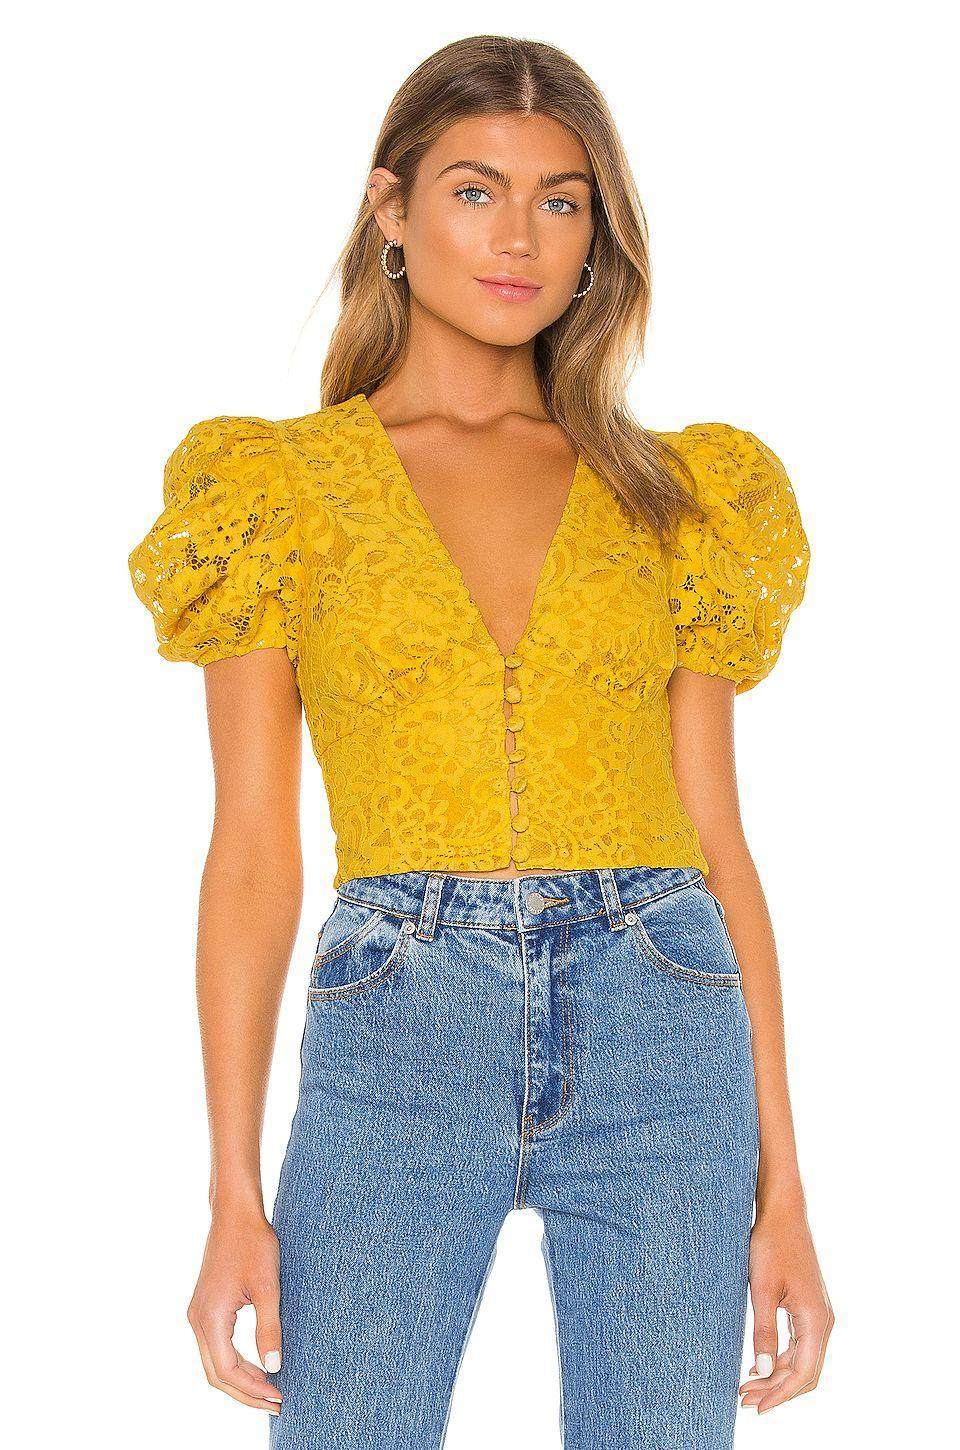 """<p><strong>House of Harlow 1960</strong></p><p>revolve.com</p><p><strong>$78.00</strong></p><p><a href=""""https://go.redirectingat.com?id=74968X1596630&url=https%3A%2F%2Fwww.revolve.com%2Fdp%2FHOOF-WS493%2F&sref=https%3A%2F%2Fwww.goodhousekeeping.com%2Fholidays%2Fthanksgiving-ideas%2Fg22728910%2Fthanksgiving-outfits%2F"""" rel=""""nofollow noopener"""" target=""""_blank"""" data-ylk=""""slk:Shop Now"""" class=""""link rapid-noclick-resp"""">Shop Now</a></p>"""